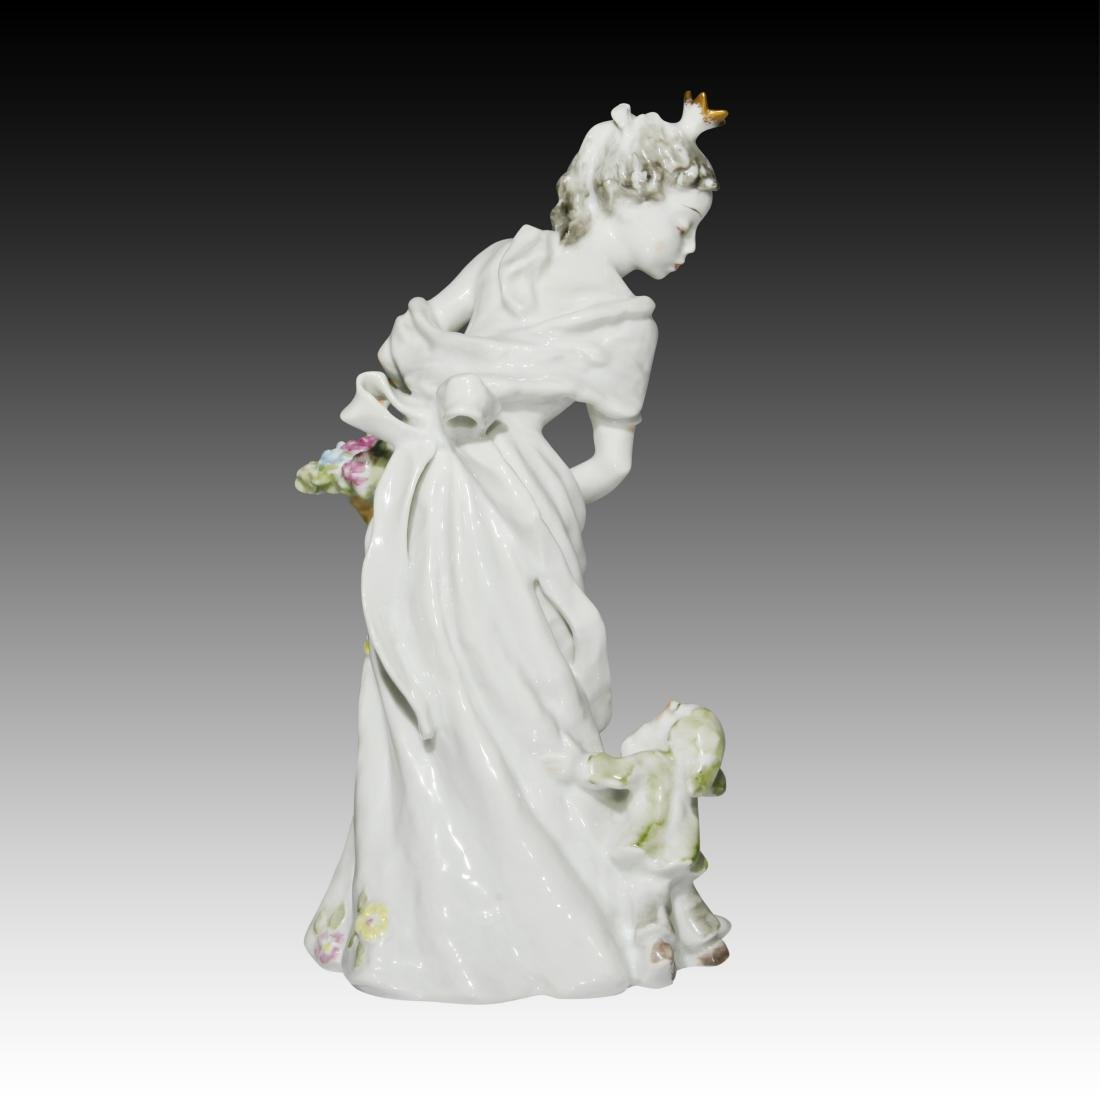 Rosenthal Figurine of Snow White with a Dwarf - 3